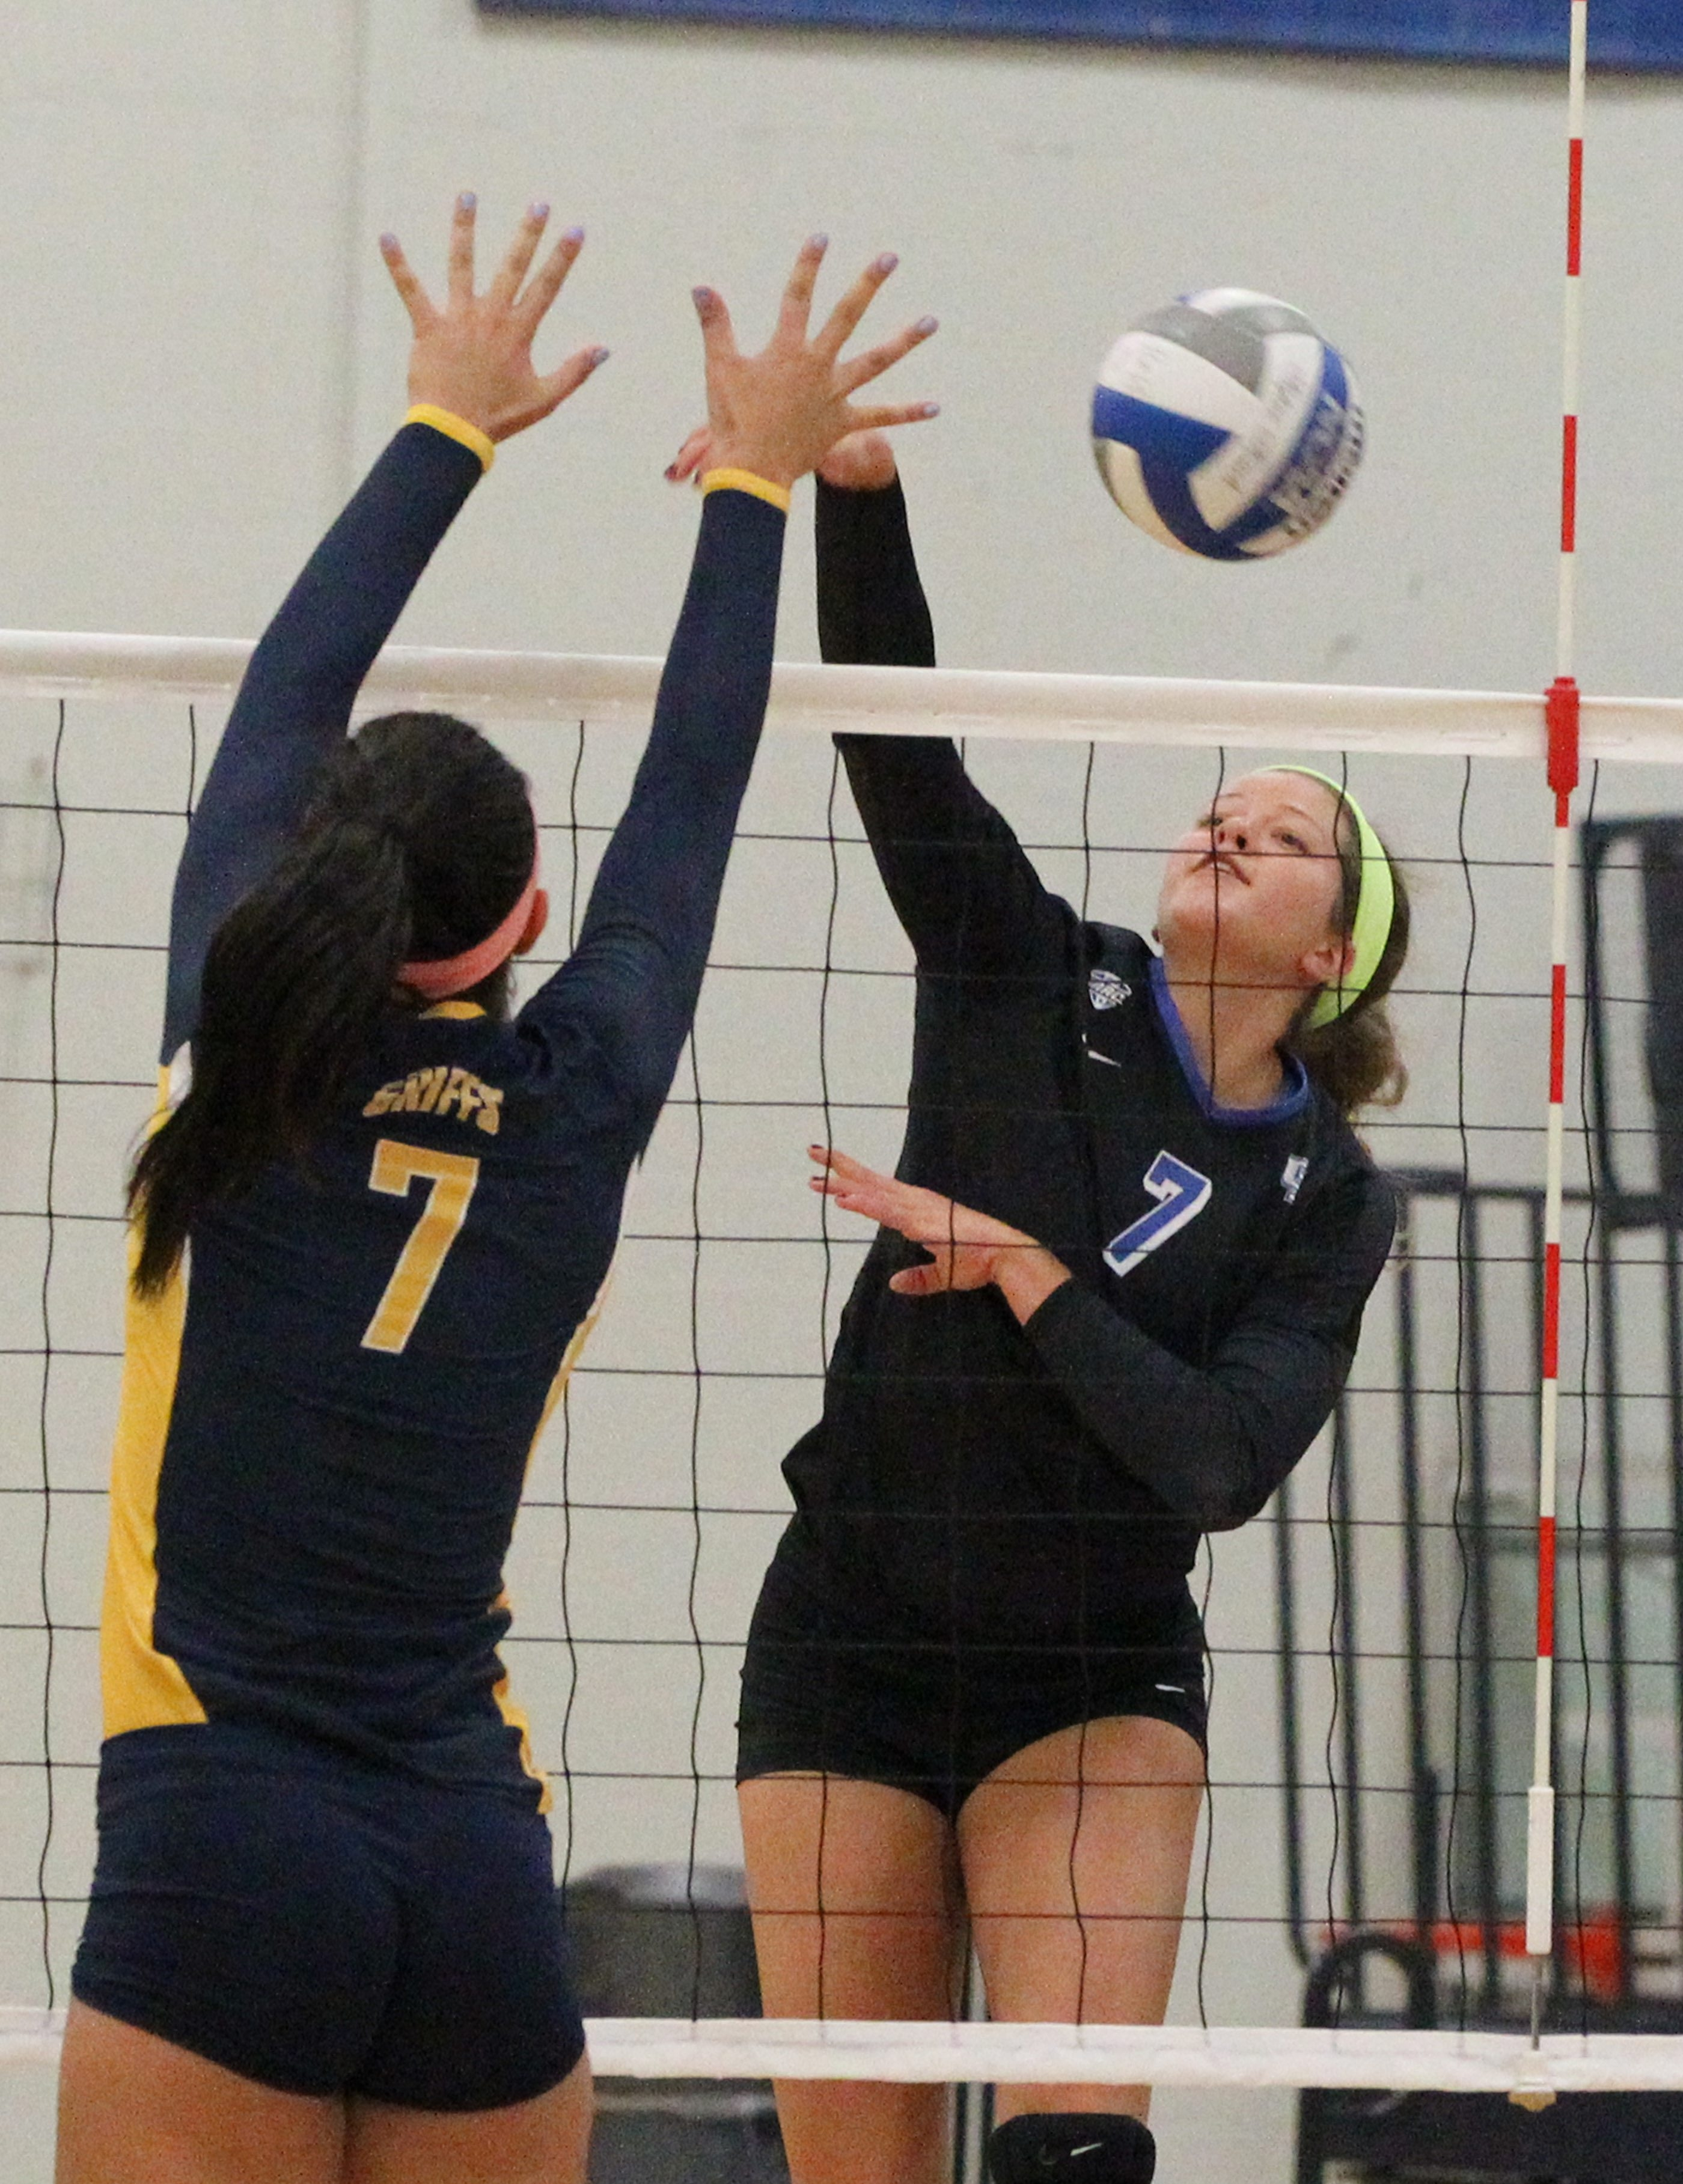 UB's Megan Lipski spikes the ball against Canisius' Rachel Kline during the Bulls' three-set victory Tuesday evening.